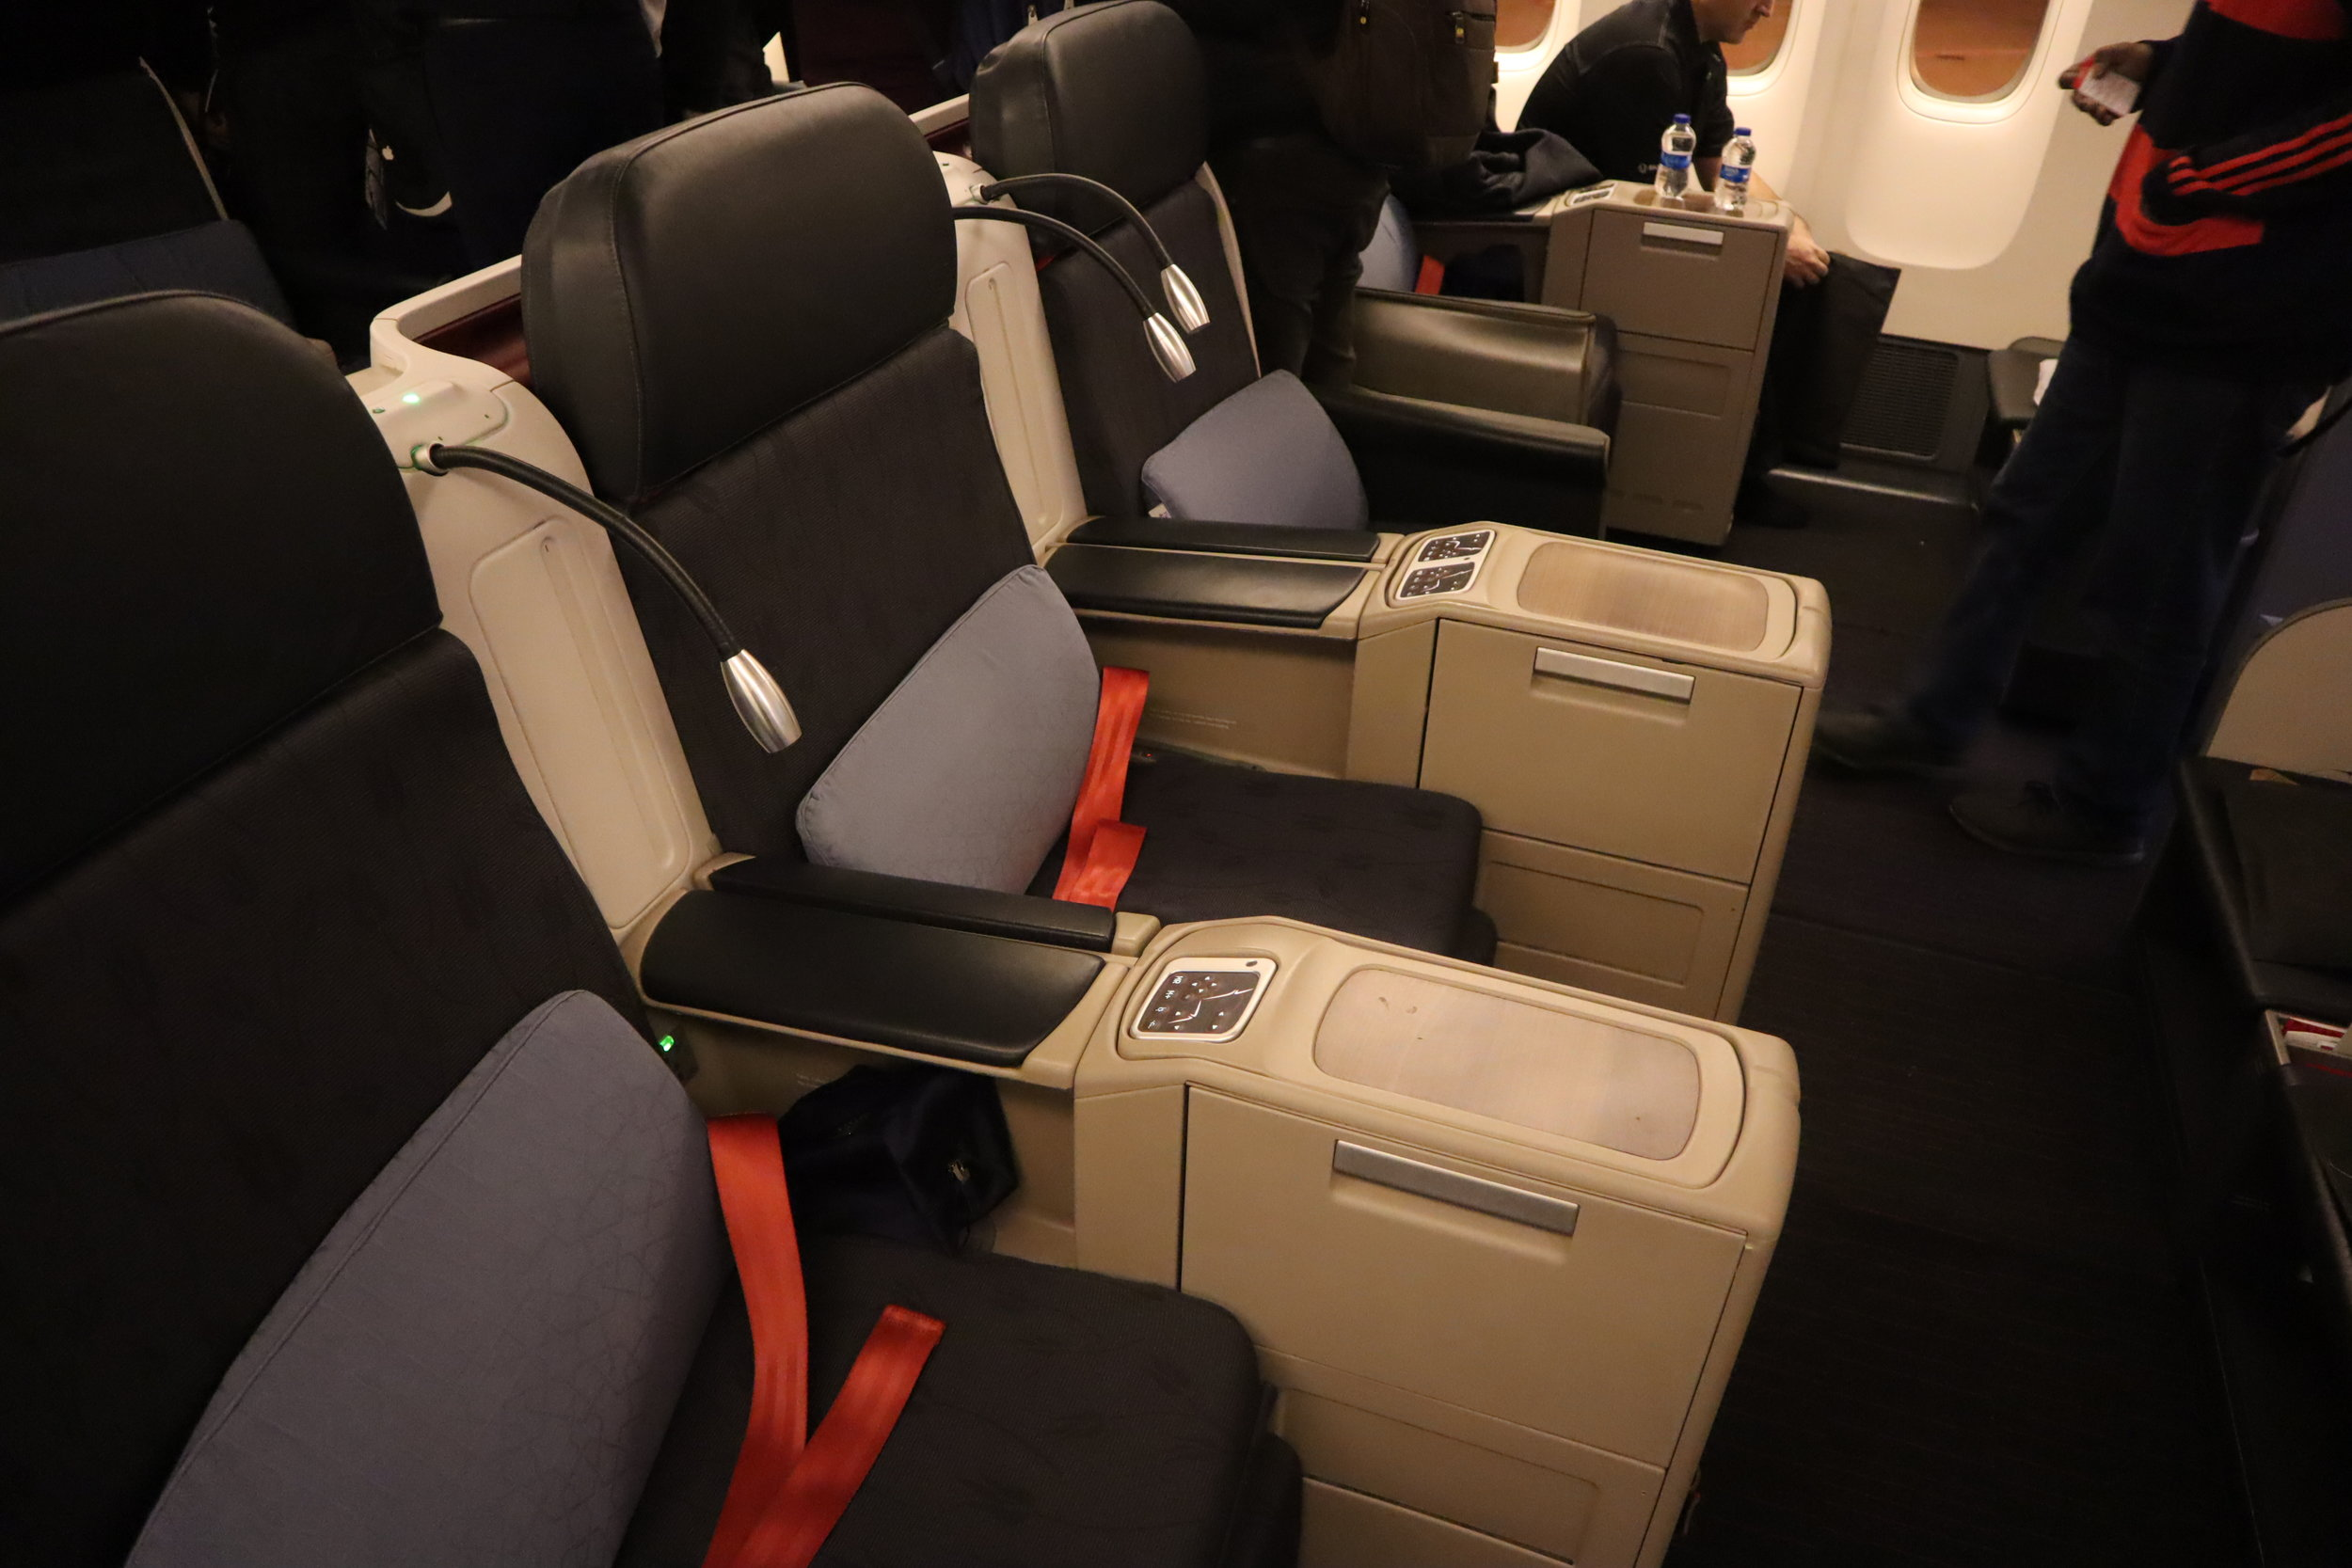 Turkish Airlines 777 business class – Middle seat